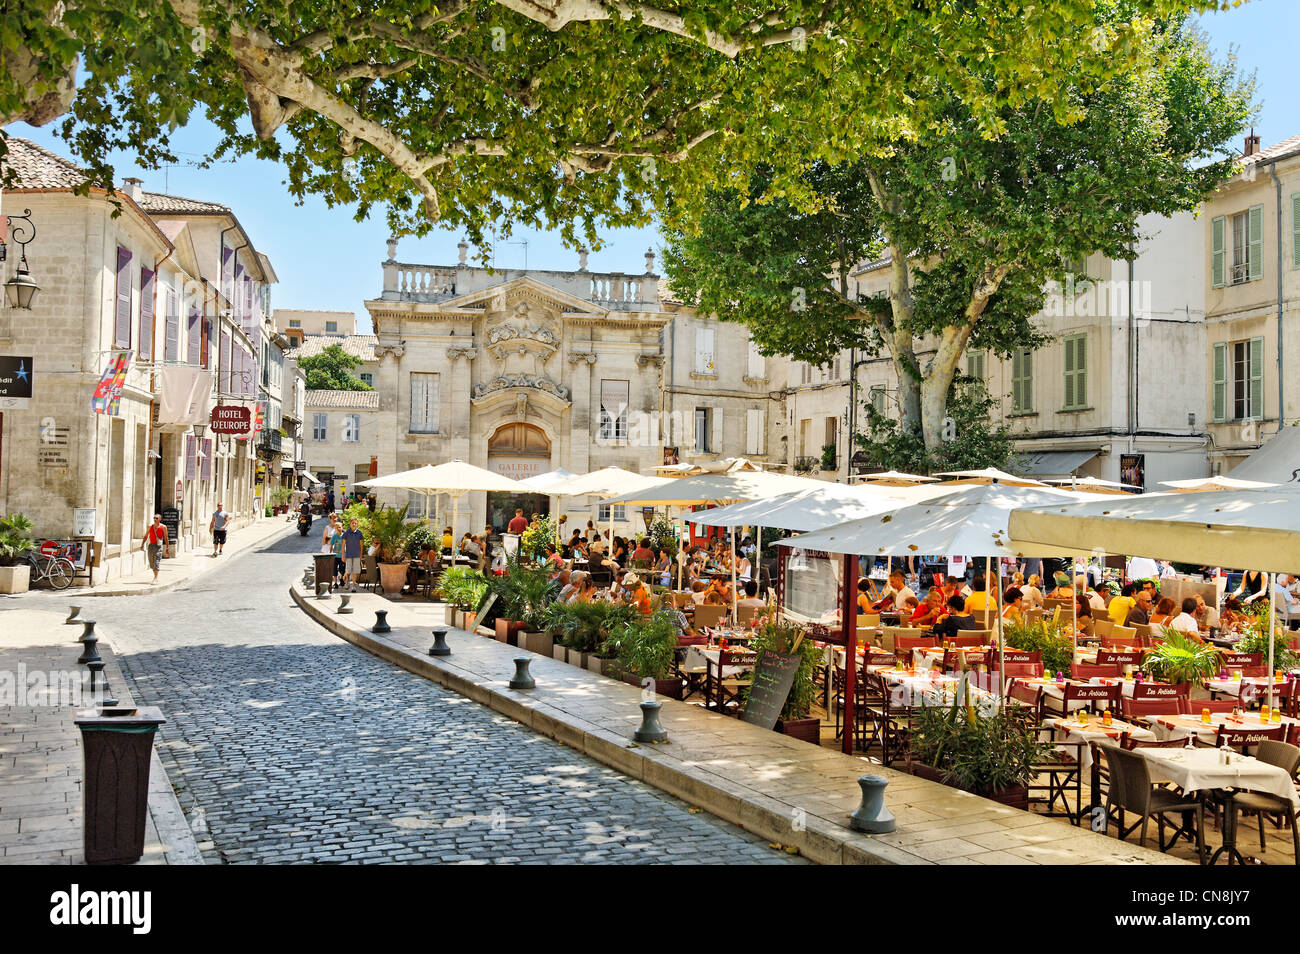 france vaucluse avignon place crillon cafe terrace in the shade stock photo royalty free. Black Bedroom Furniture Sets. Home Design Ideas